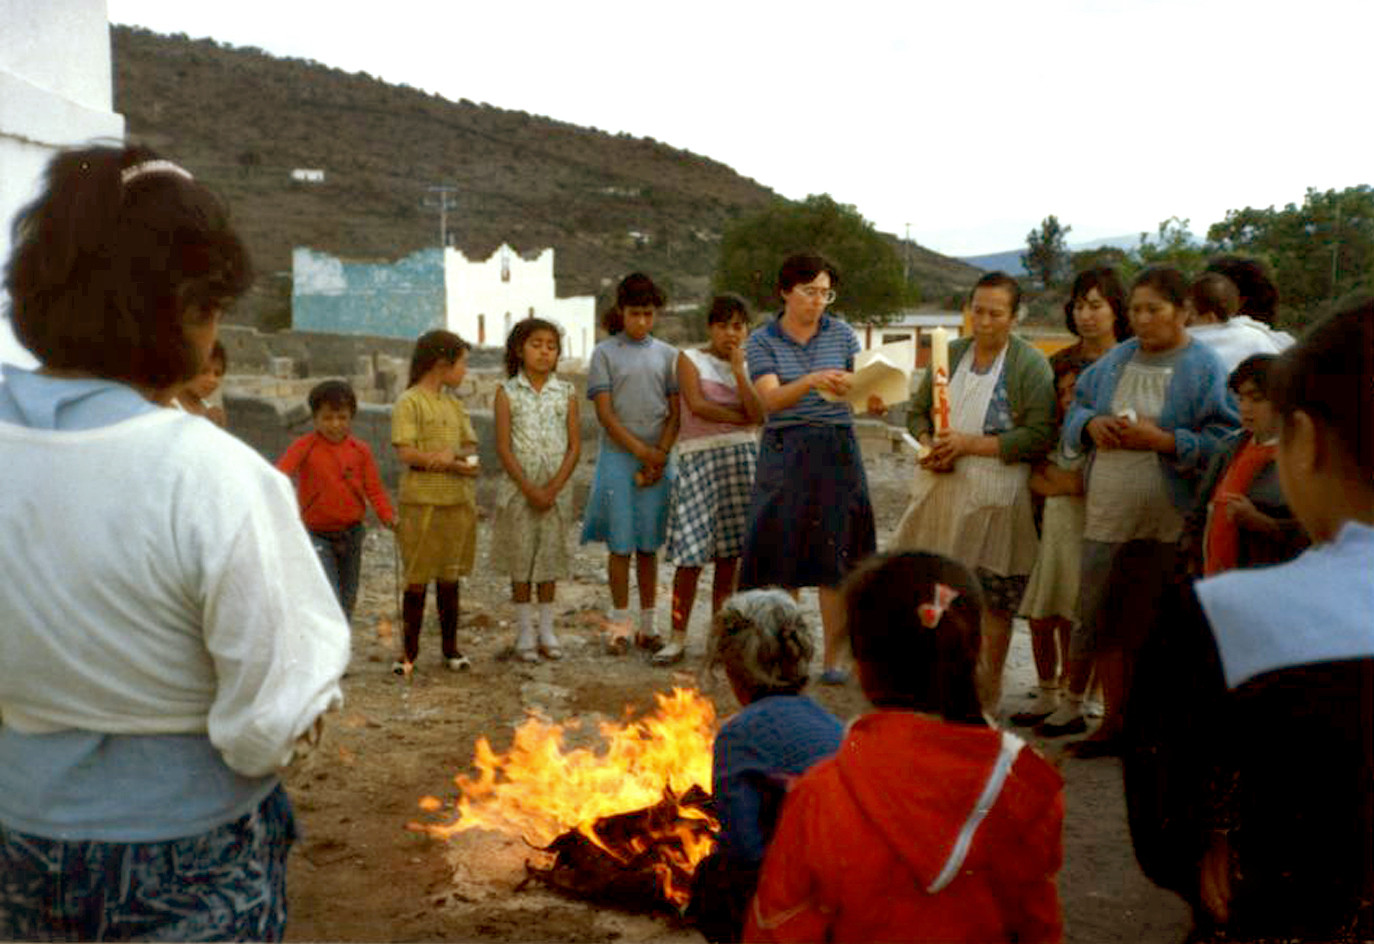 Since 1973, more than 100 Sisters from Mexico have created and worked in numerous pastoral communities in Mexico. They assist the indigenous, displaced, and underserved.